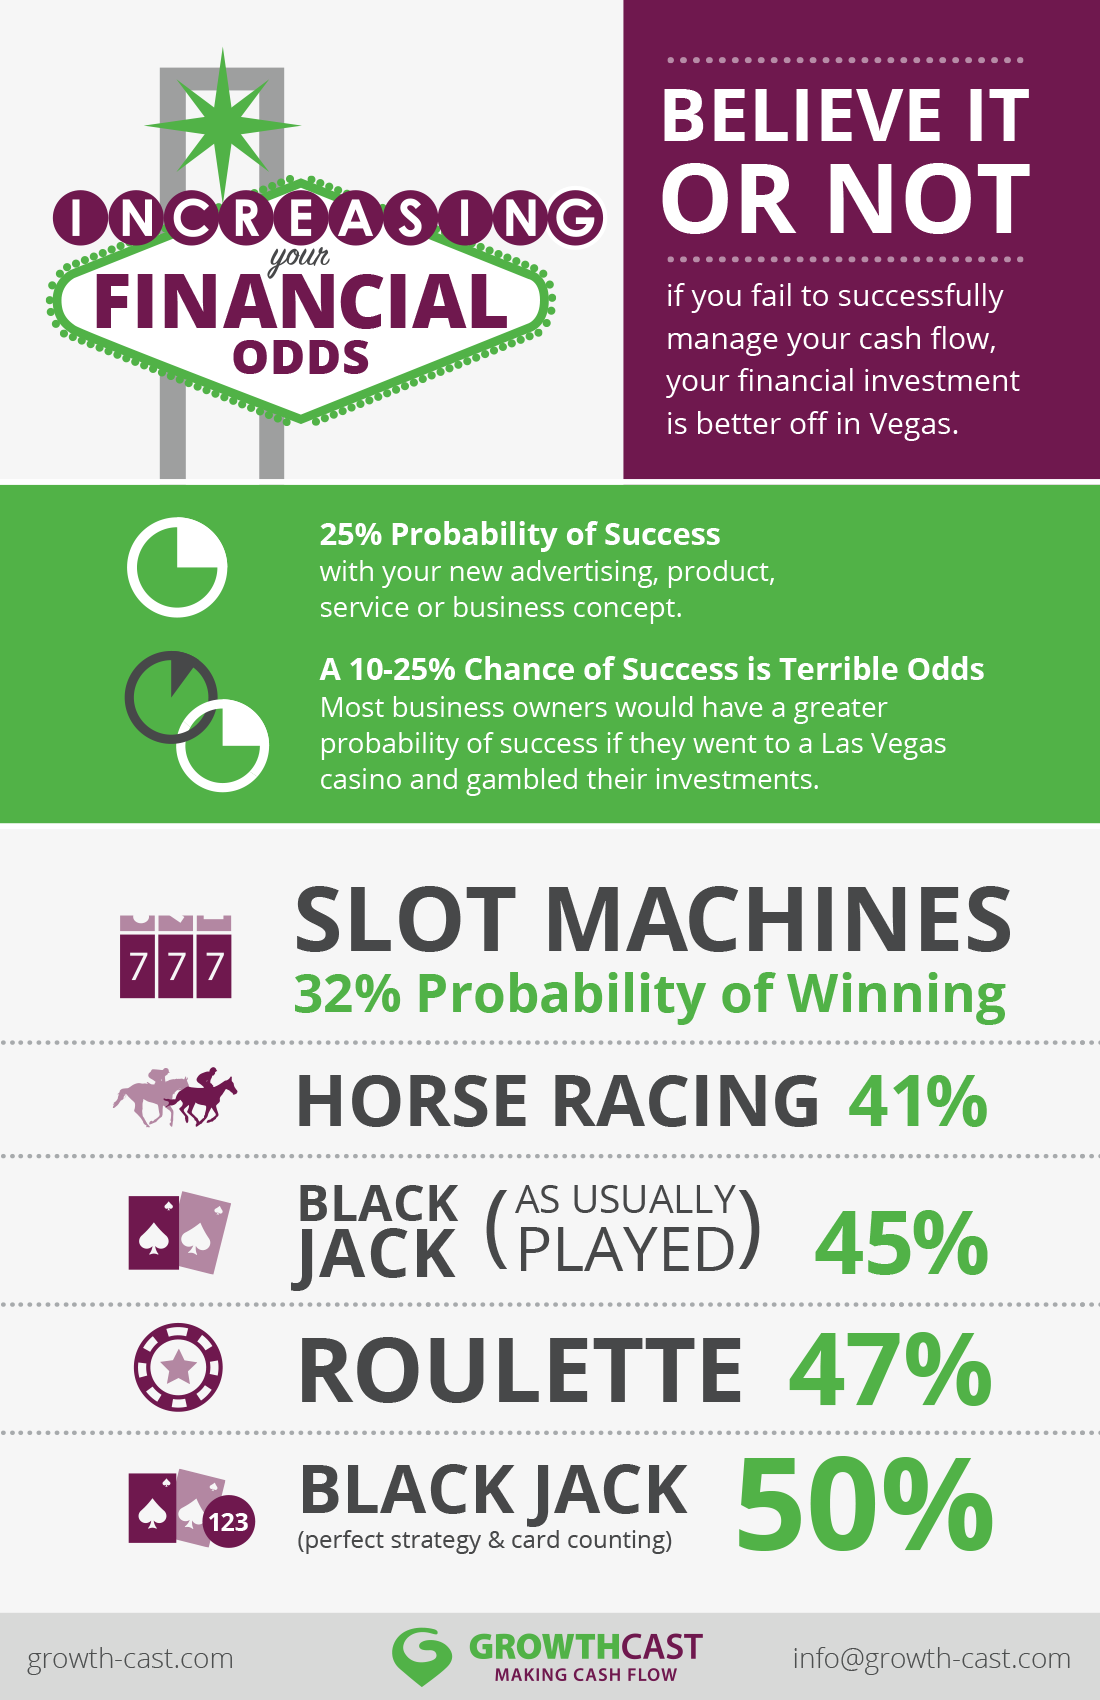 Increasing Your Financial Odds